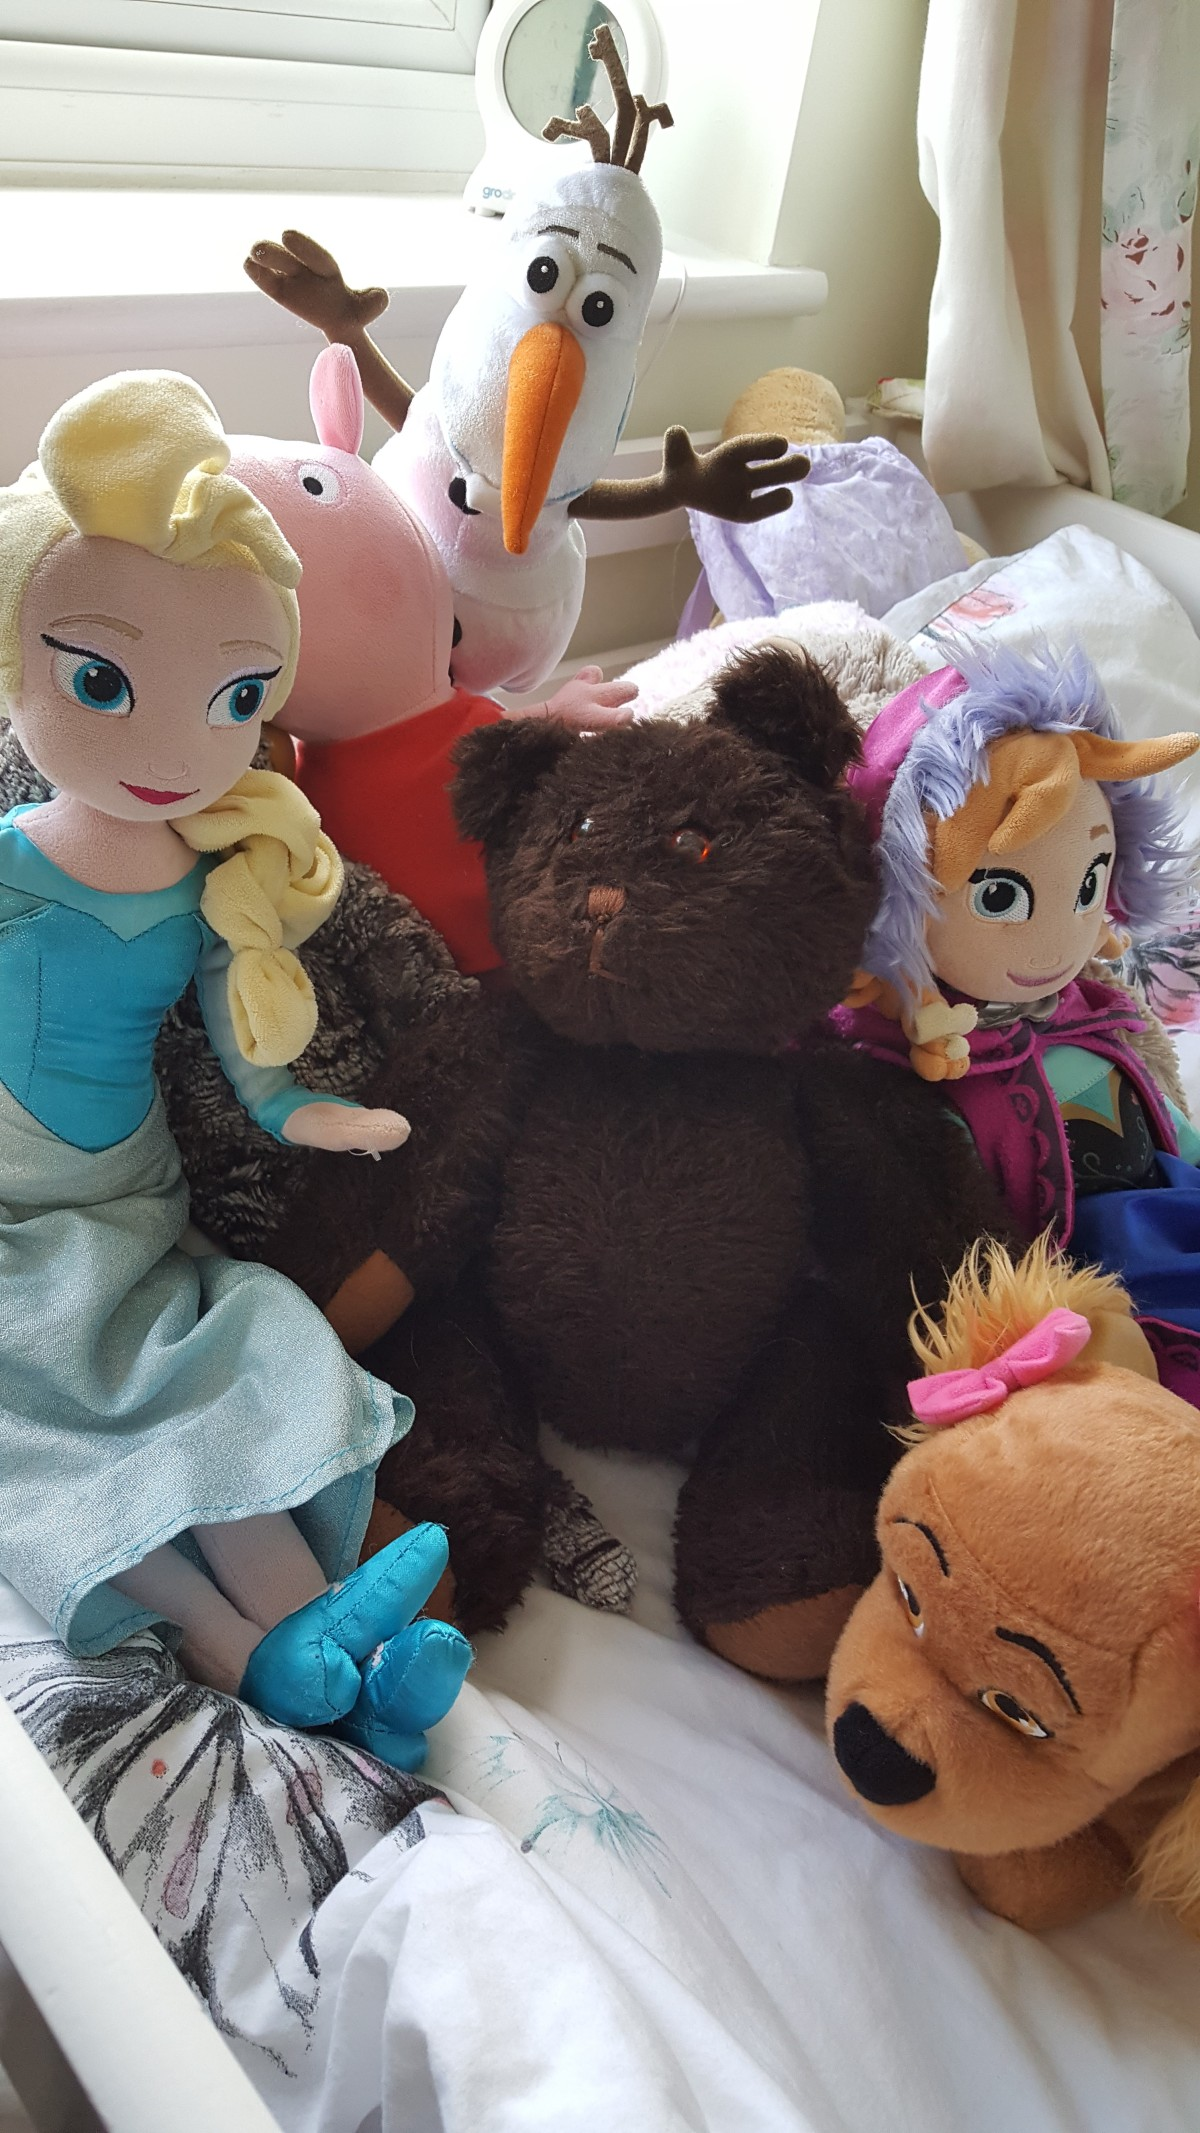 When the travelling bear came to stay (the grown upversion)